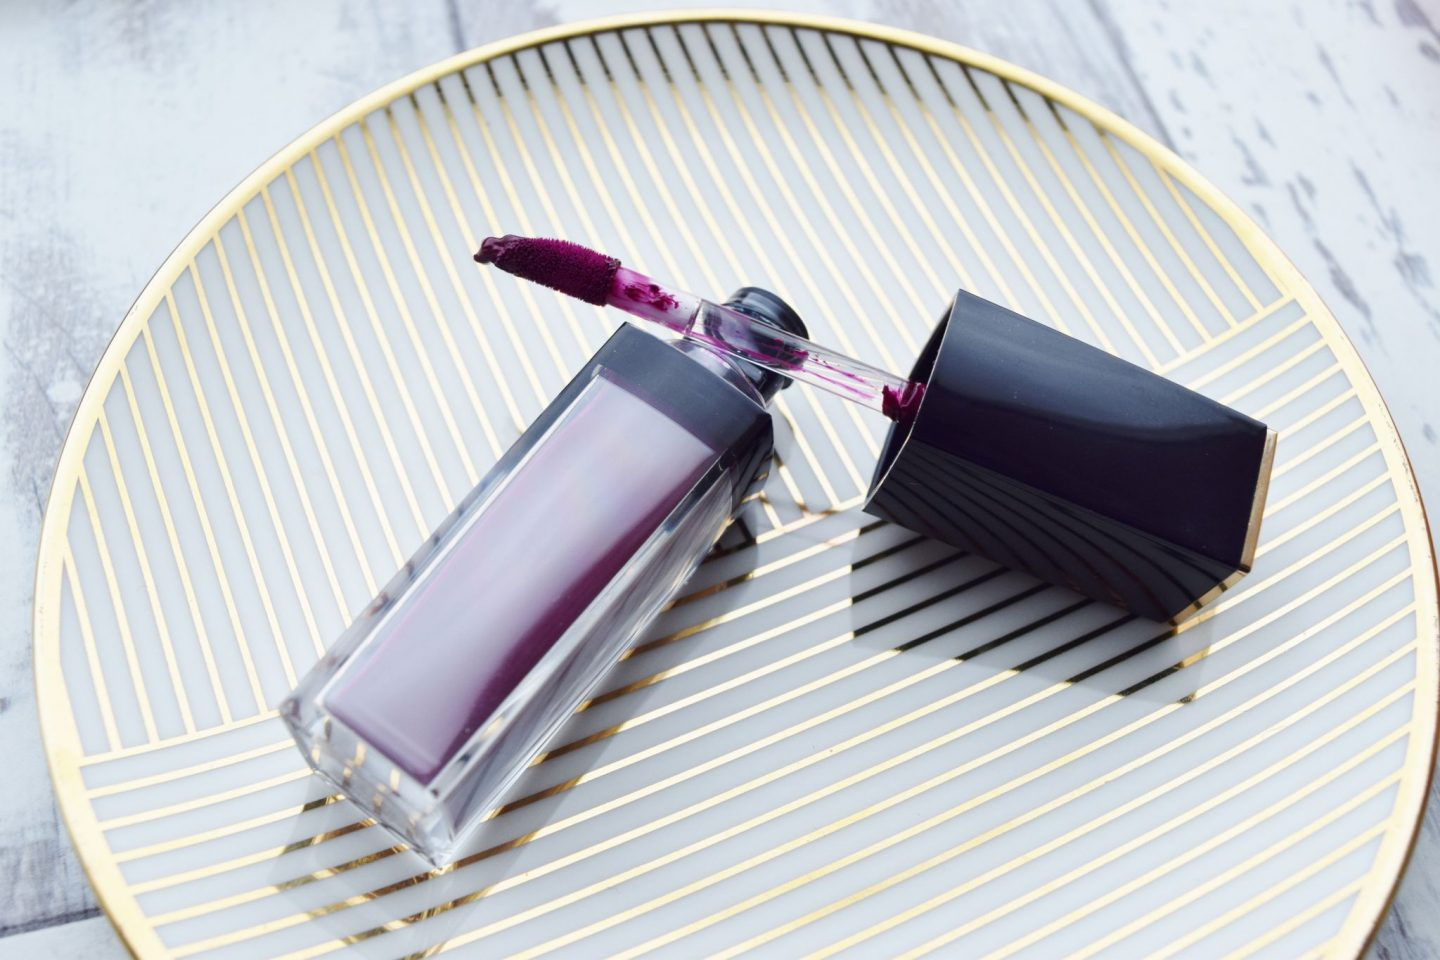 Estee Lauder Pure Color Envy Liquid LipColor in Orchid Flare